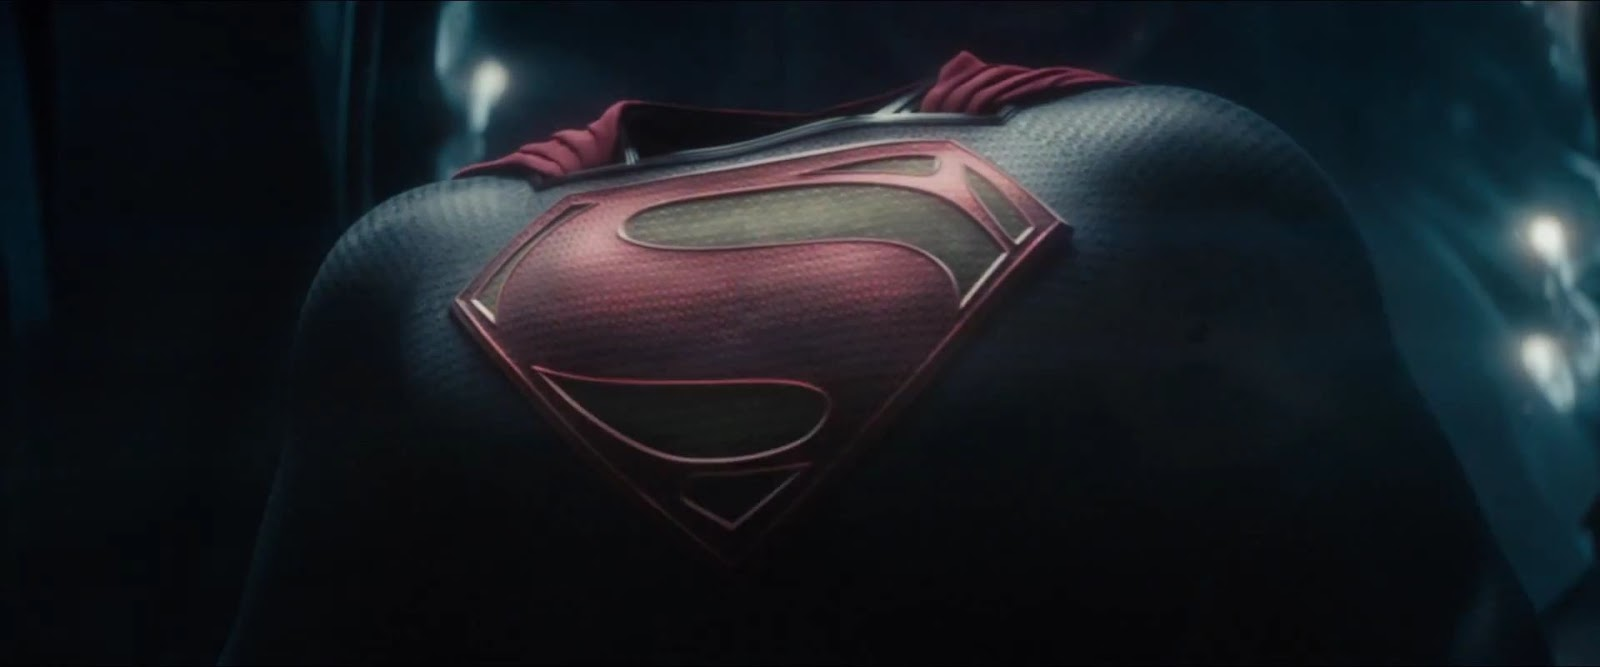 Wallpapers For Superman Logo Hd Wallpapers 1080p 1600x667